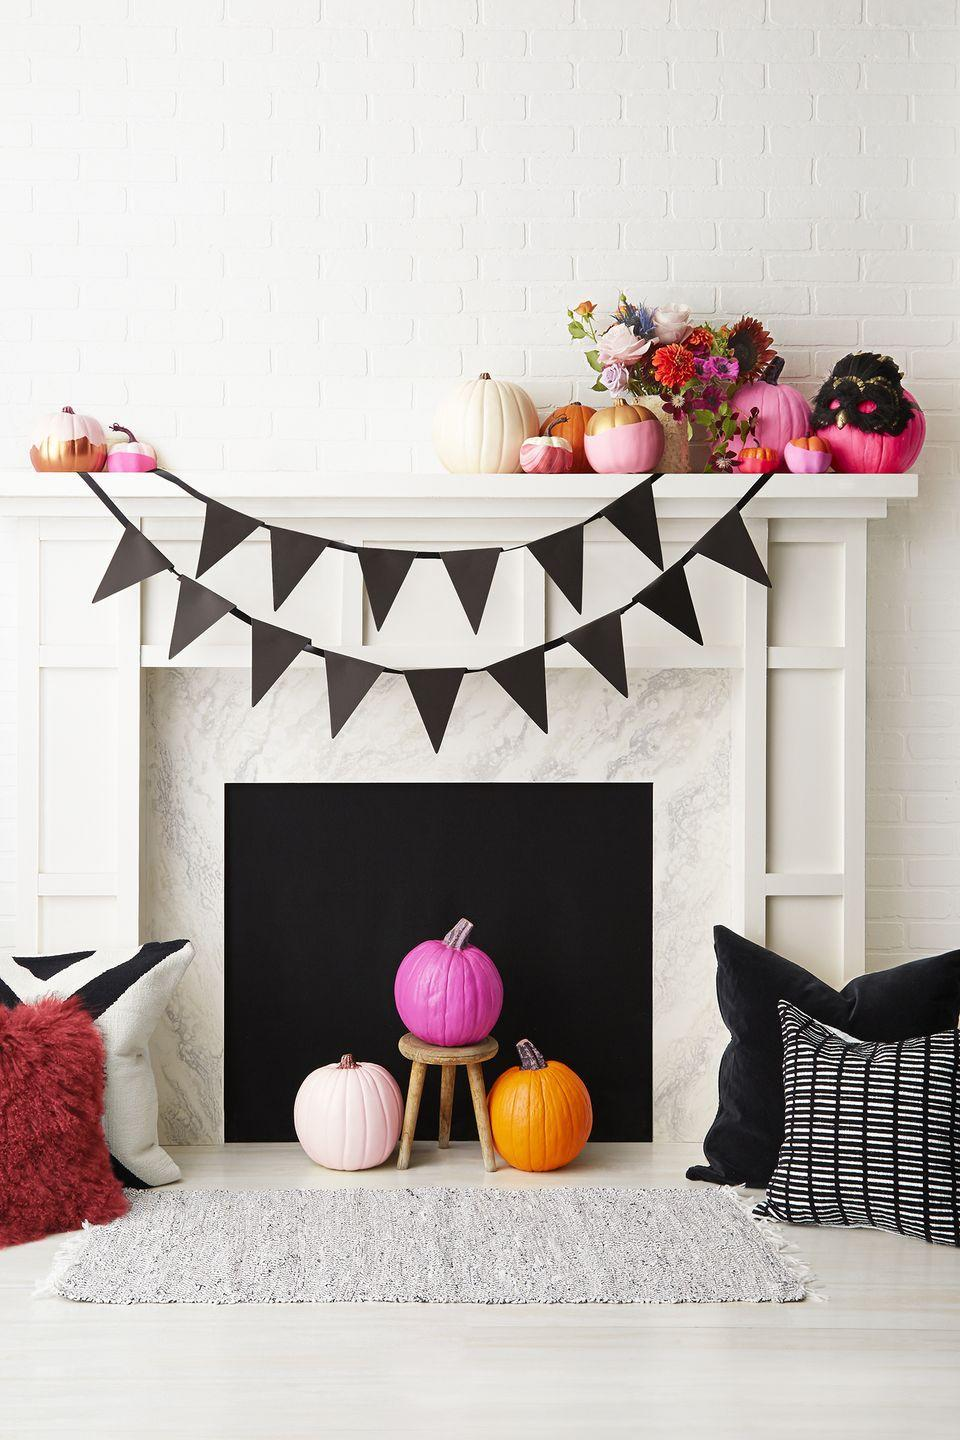 <p>Think beyond traditional Halloween decor by styling your mantel with an eye-popping mix of brightly colored pumpkins, fresh blooms, and fun accessories. Paint pumpkins in gold or pink, then for some, snip the top off a new balloon and wrap it around the lower part of the gourd. <br></p>